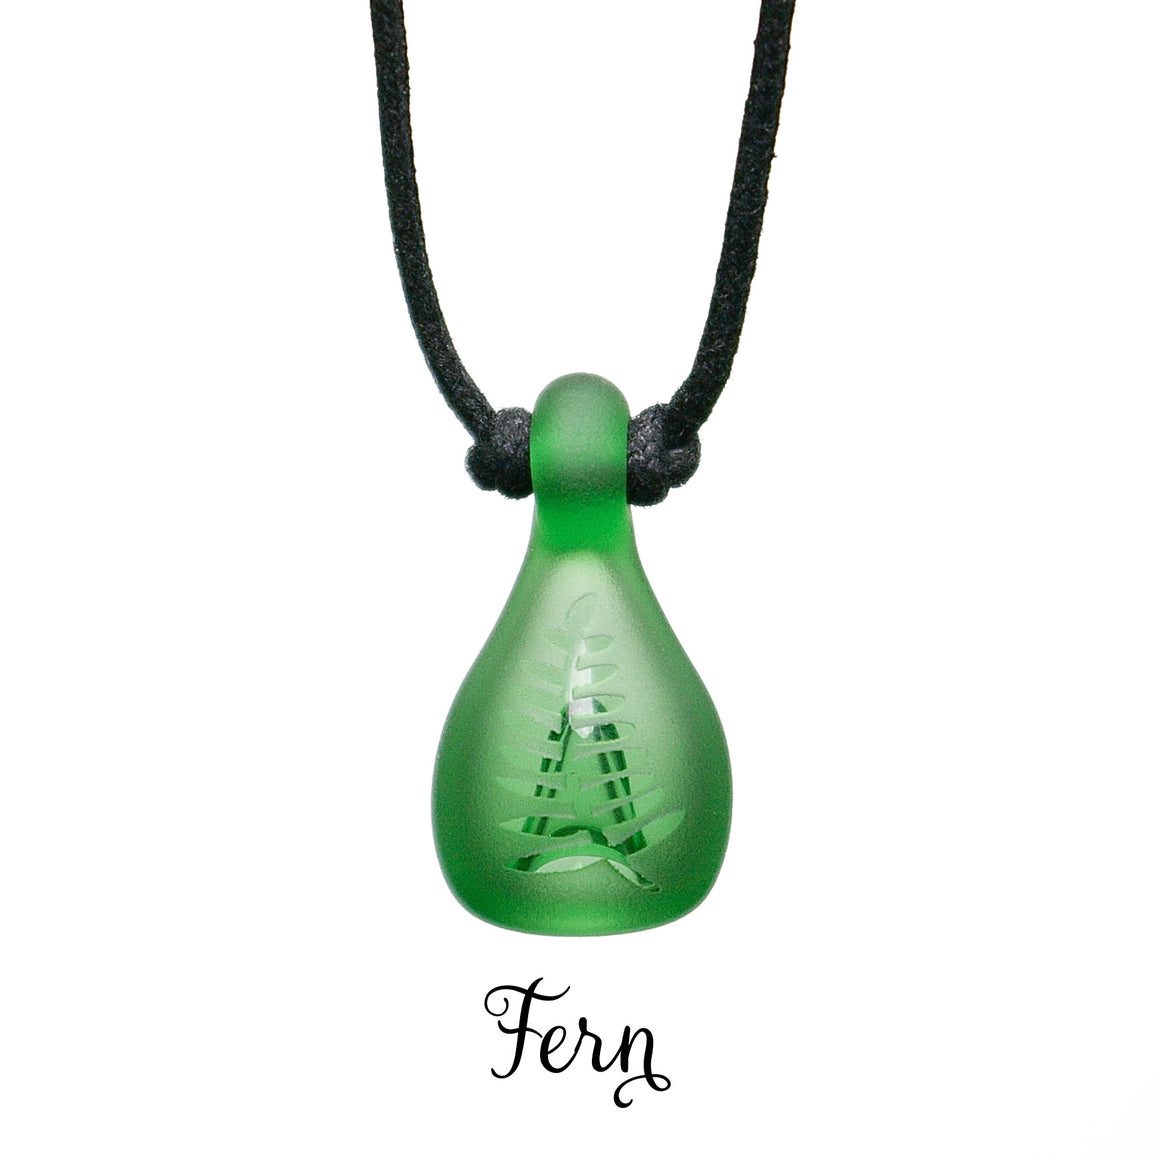 Aromatherapy Jewelry, Colored Frosted with Design - Fern